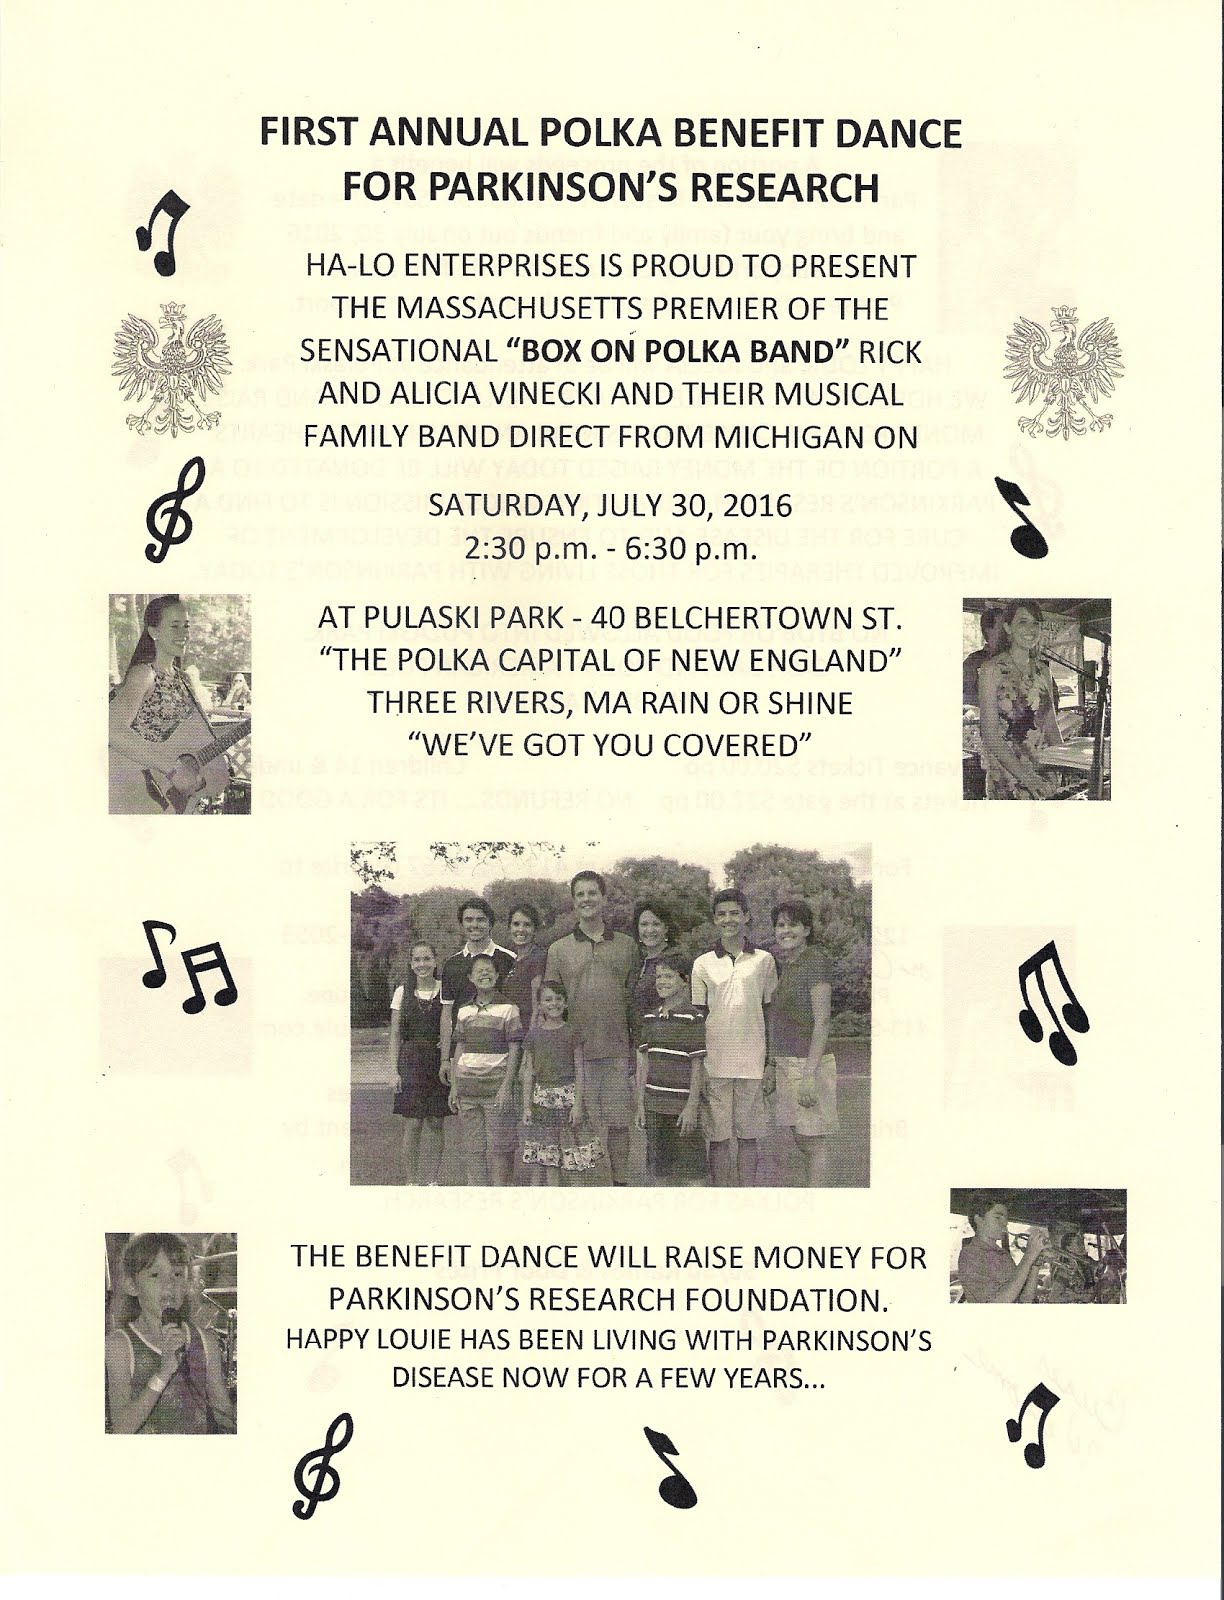 First Annual Polka Benefit Dance for Parkinson's Research